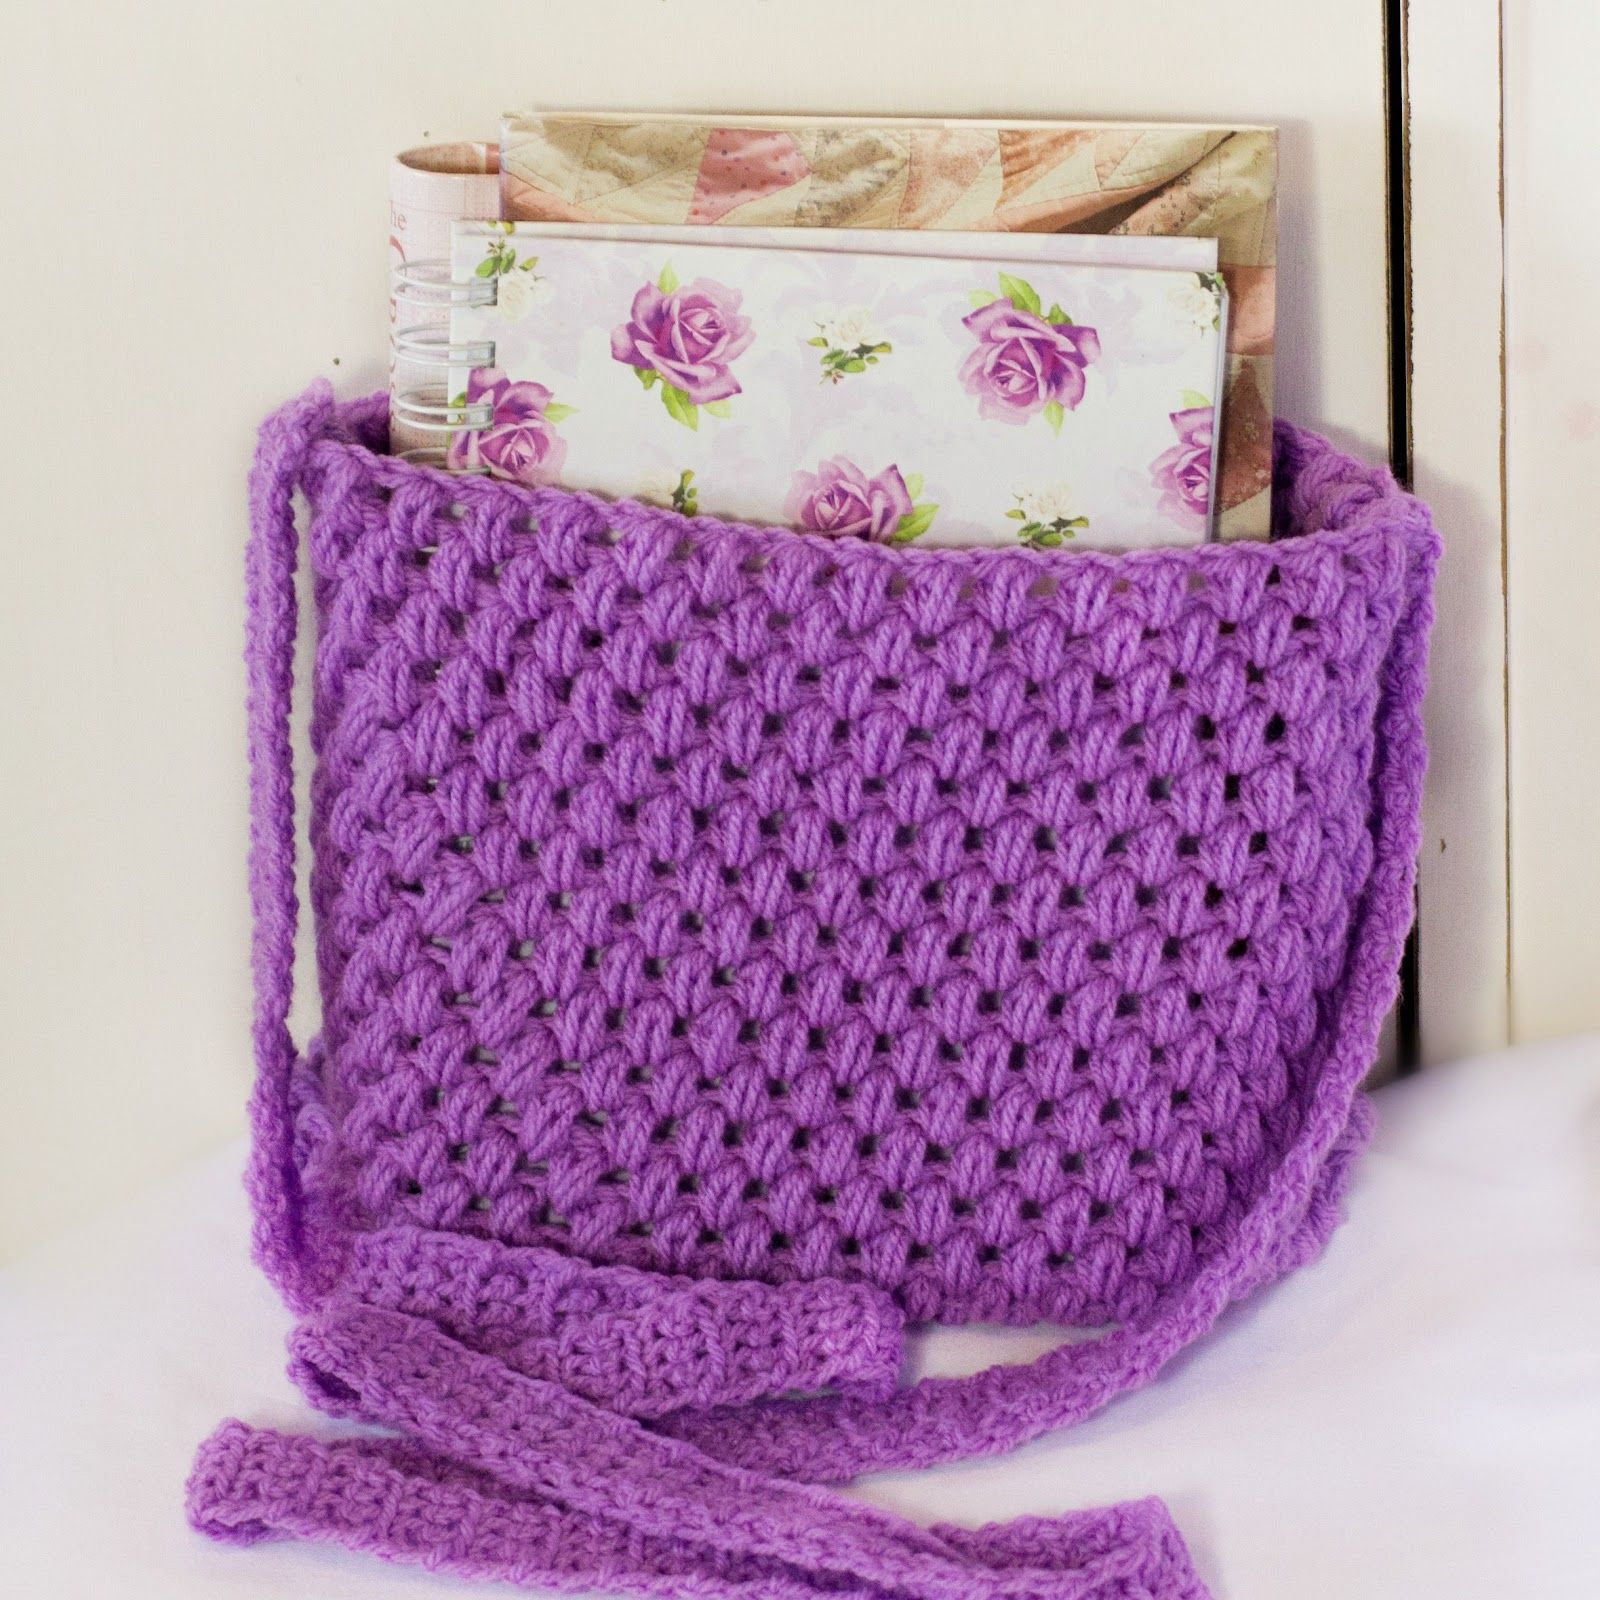 Easy Tote Bag Crochet - The pattern includes video to new stitch and ...